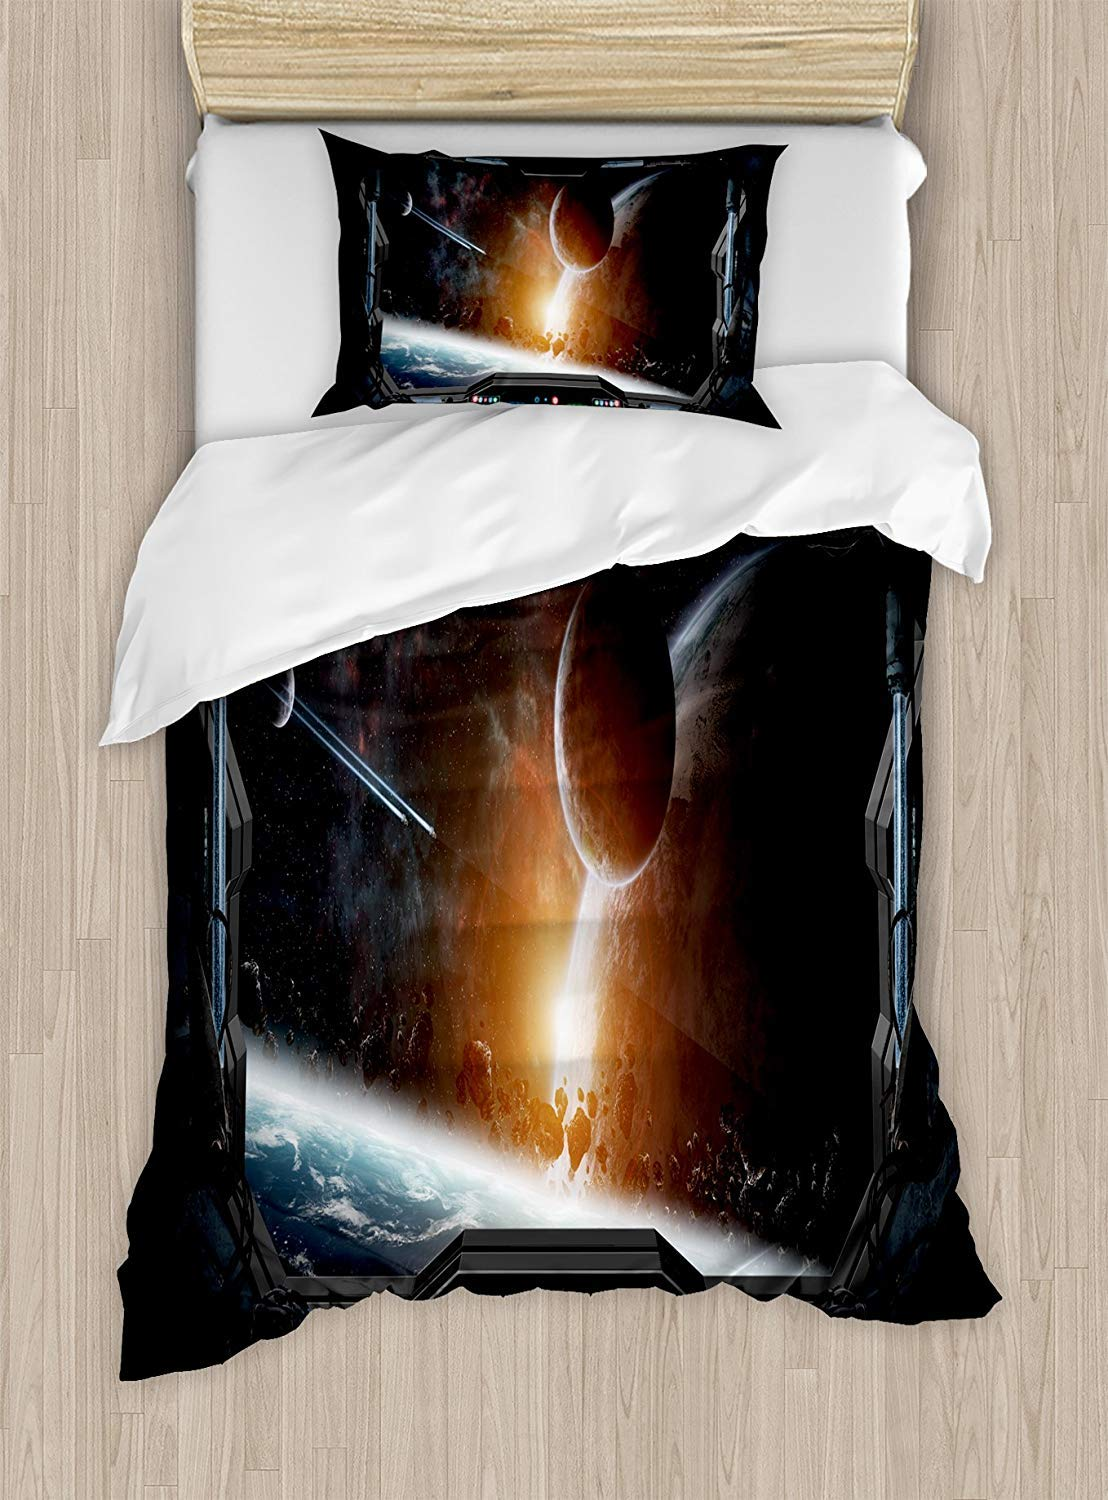 MAIANNE Outer Space Duvet Cover, Scenery of Planets from The Window of a Shuttle Bodies Astronaut Space Station, Decorative 4 Piece Bedding Set with 2 Pillowcases, Gray Orange